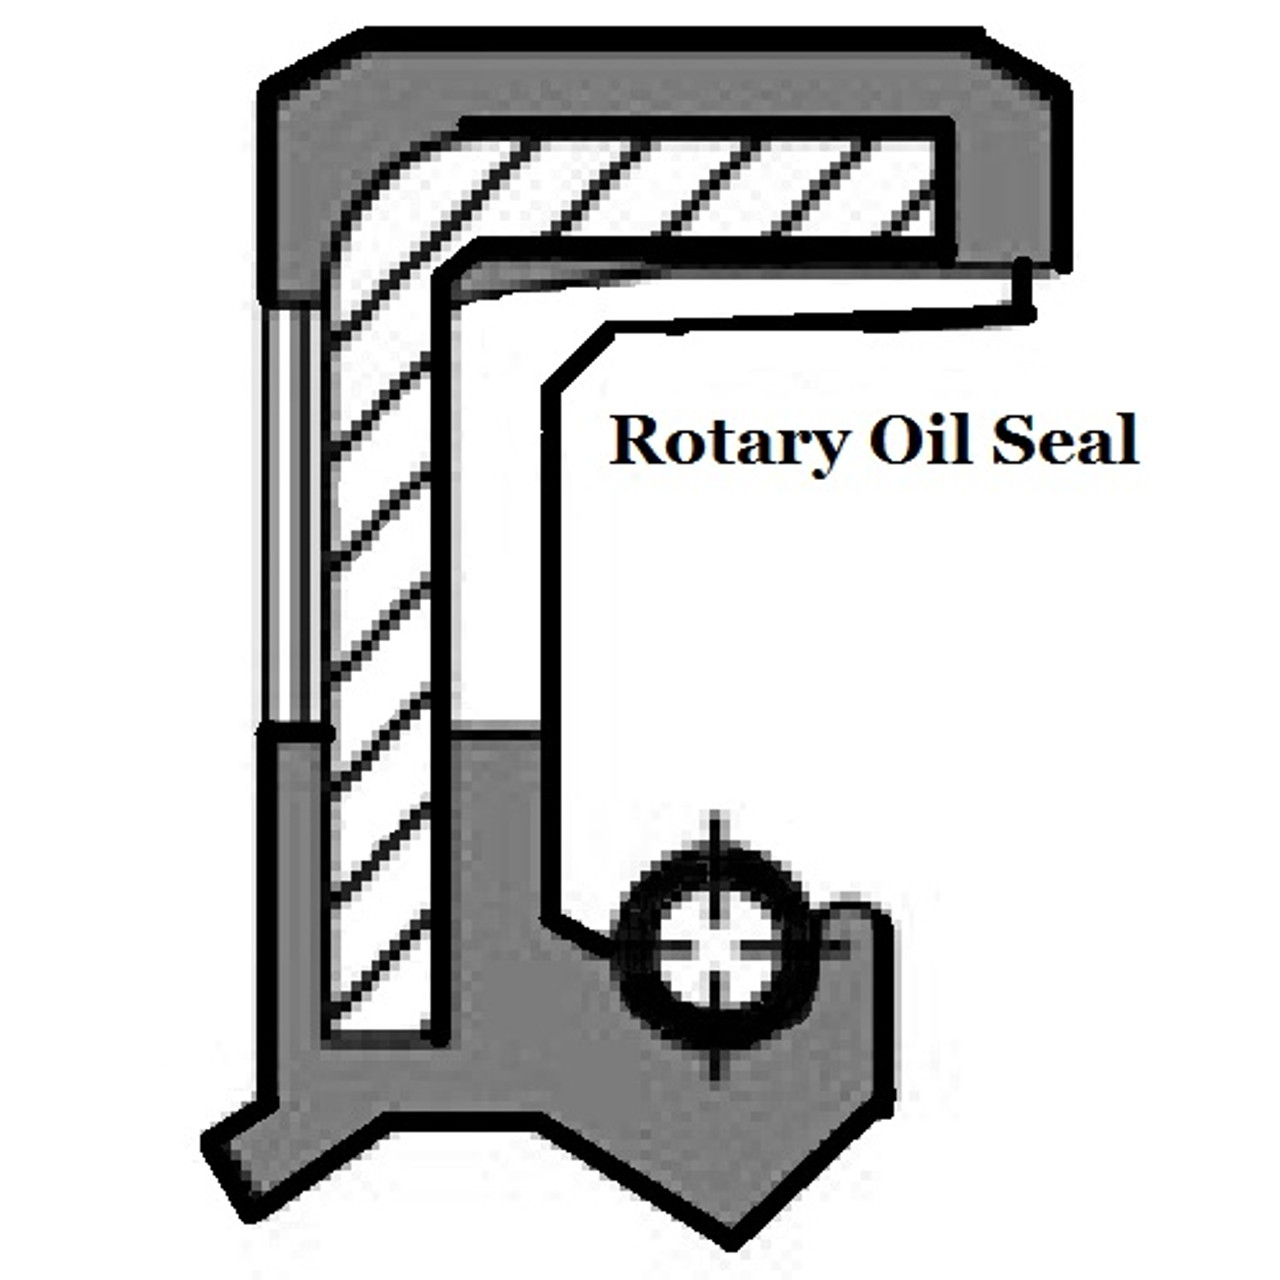 Rotary shaft oil seal 85 x 110 x pack height, model